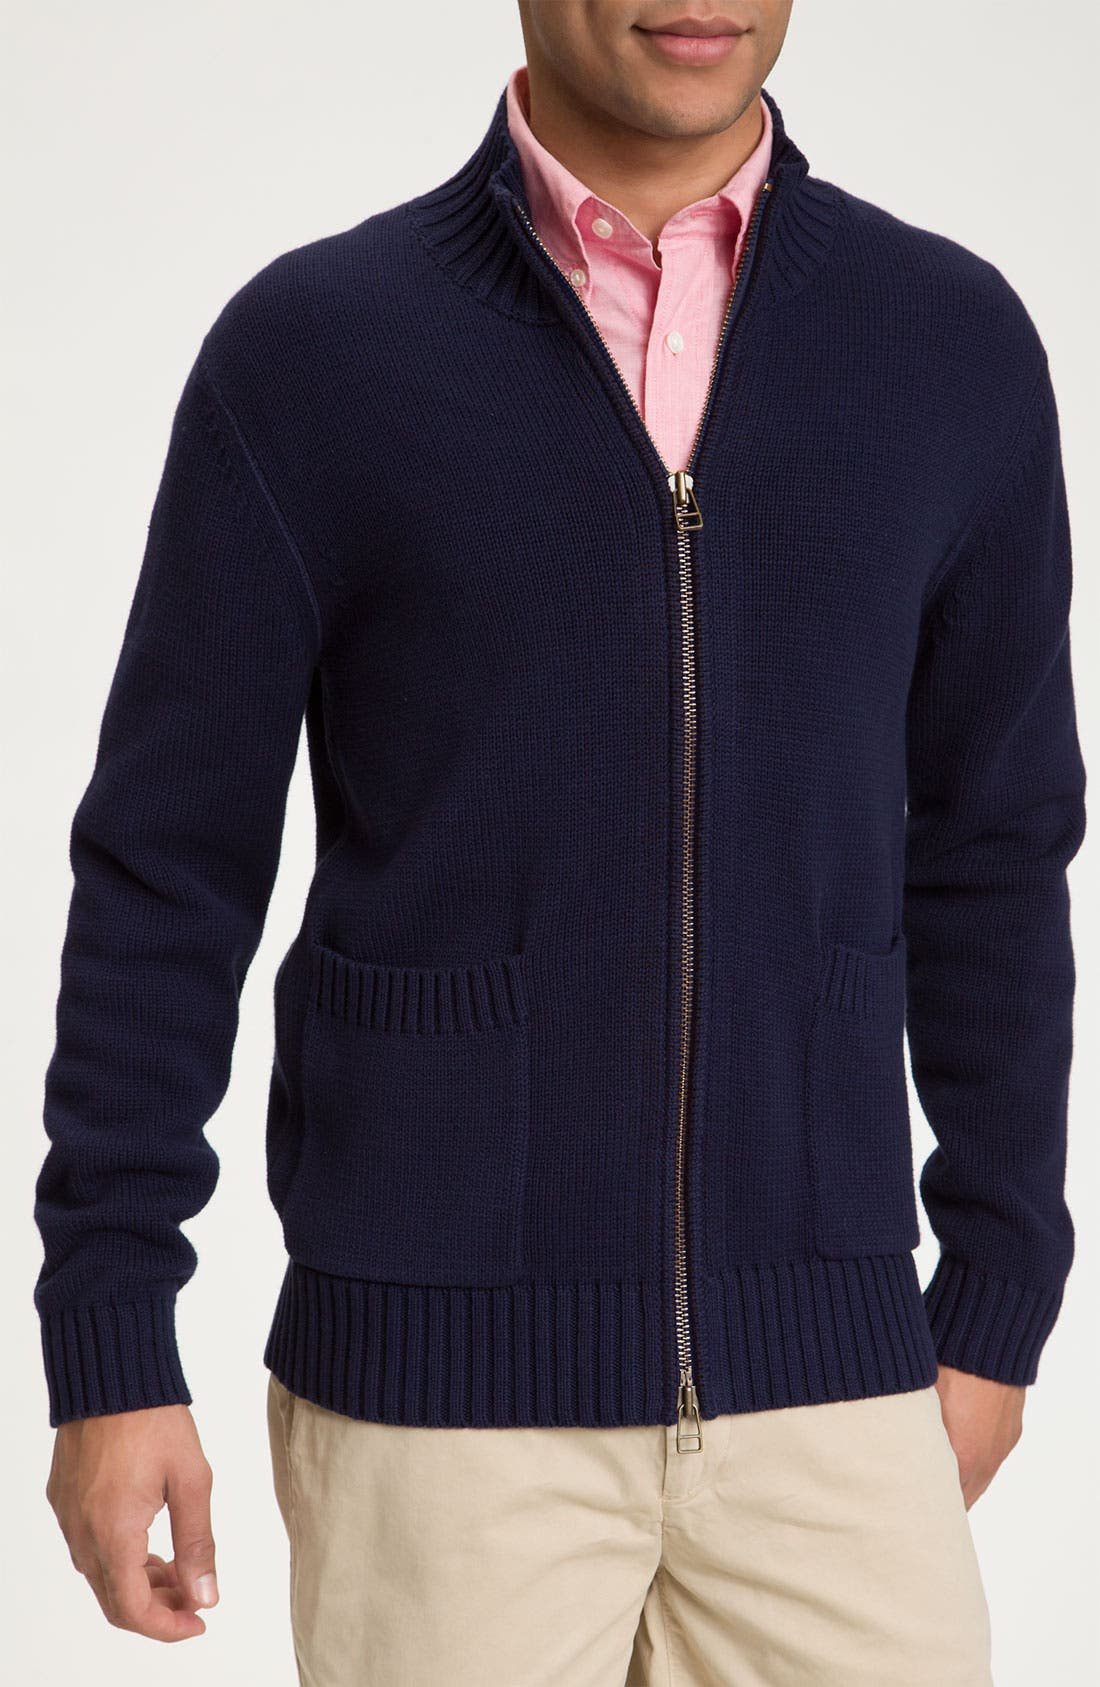 Alternate Image 1 Selected - Jack Spade 'Mookie' Zip Sweater